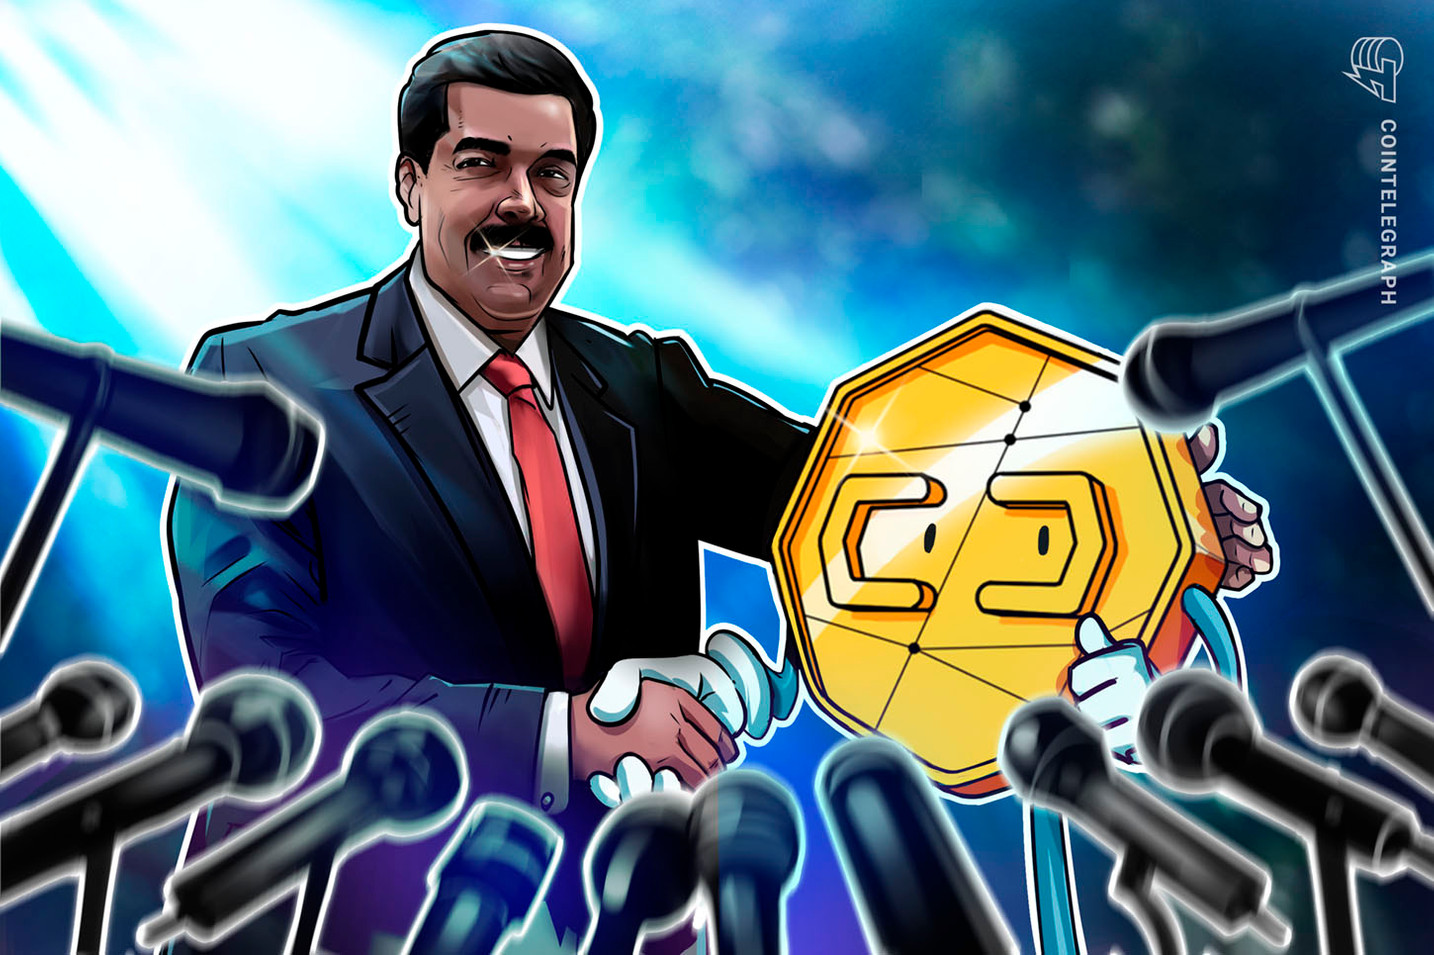 Venezuela's Maduro Denied Access to Gold Storage as Self-Sovereign BTC Shines